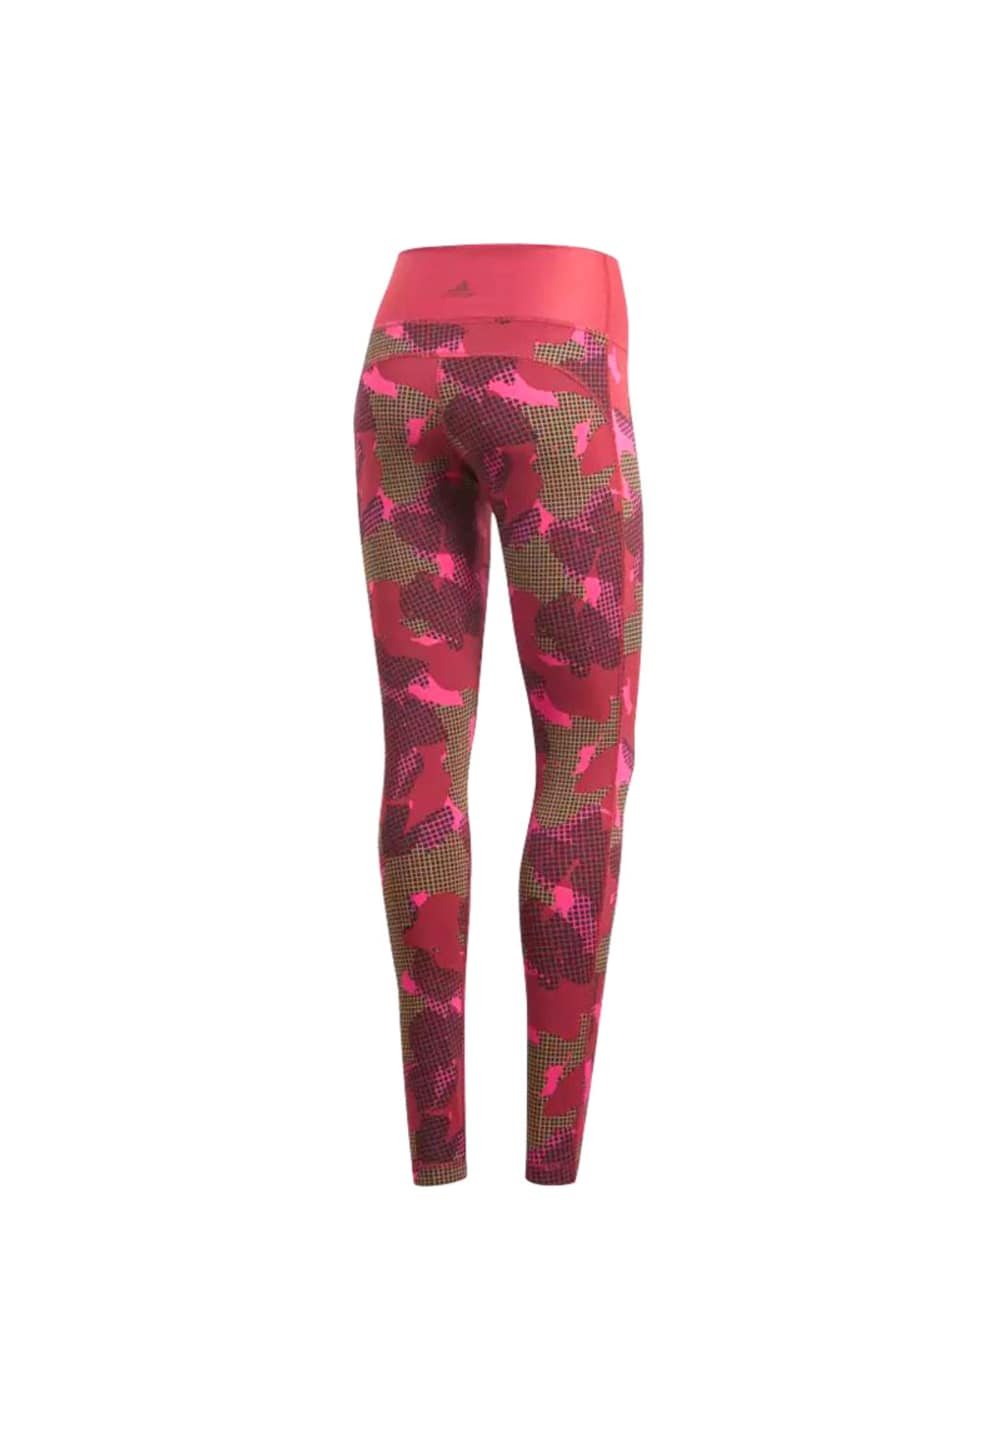 37a1c74df20 adidas Believe This Tights - Running trousers for Women - Red